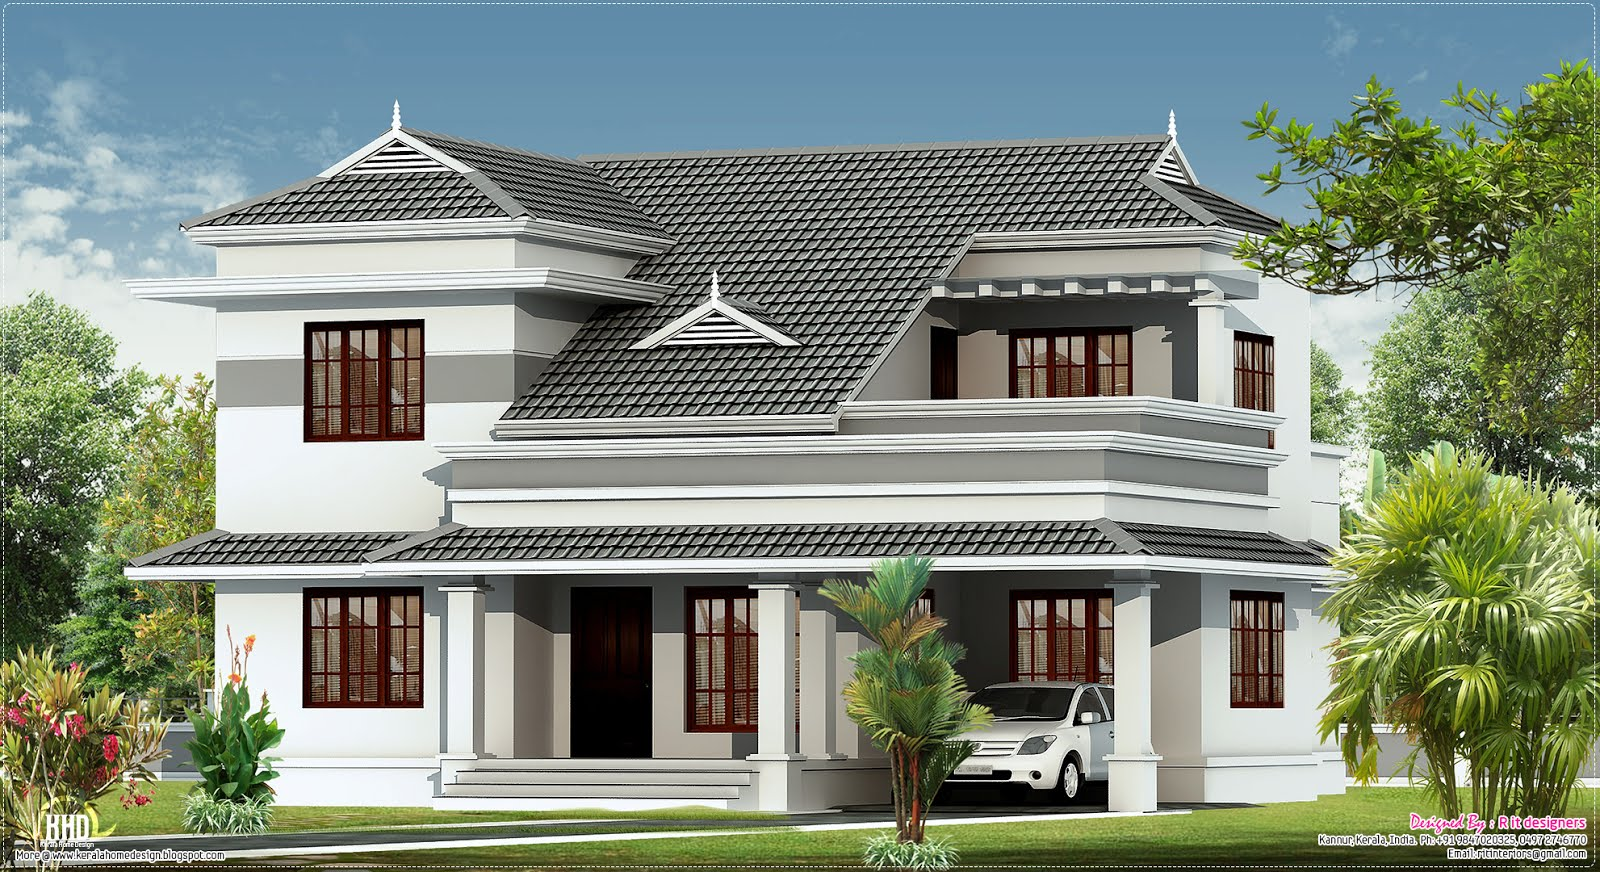 New villa design in 2250 kerala home design and floor plans - New house plan photos ...